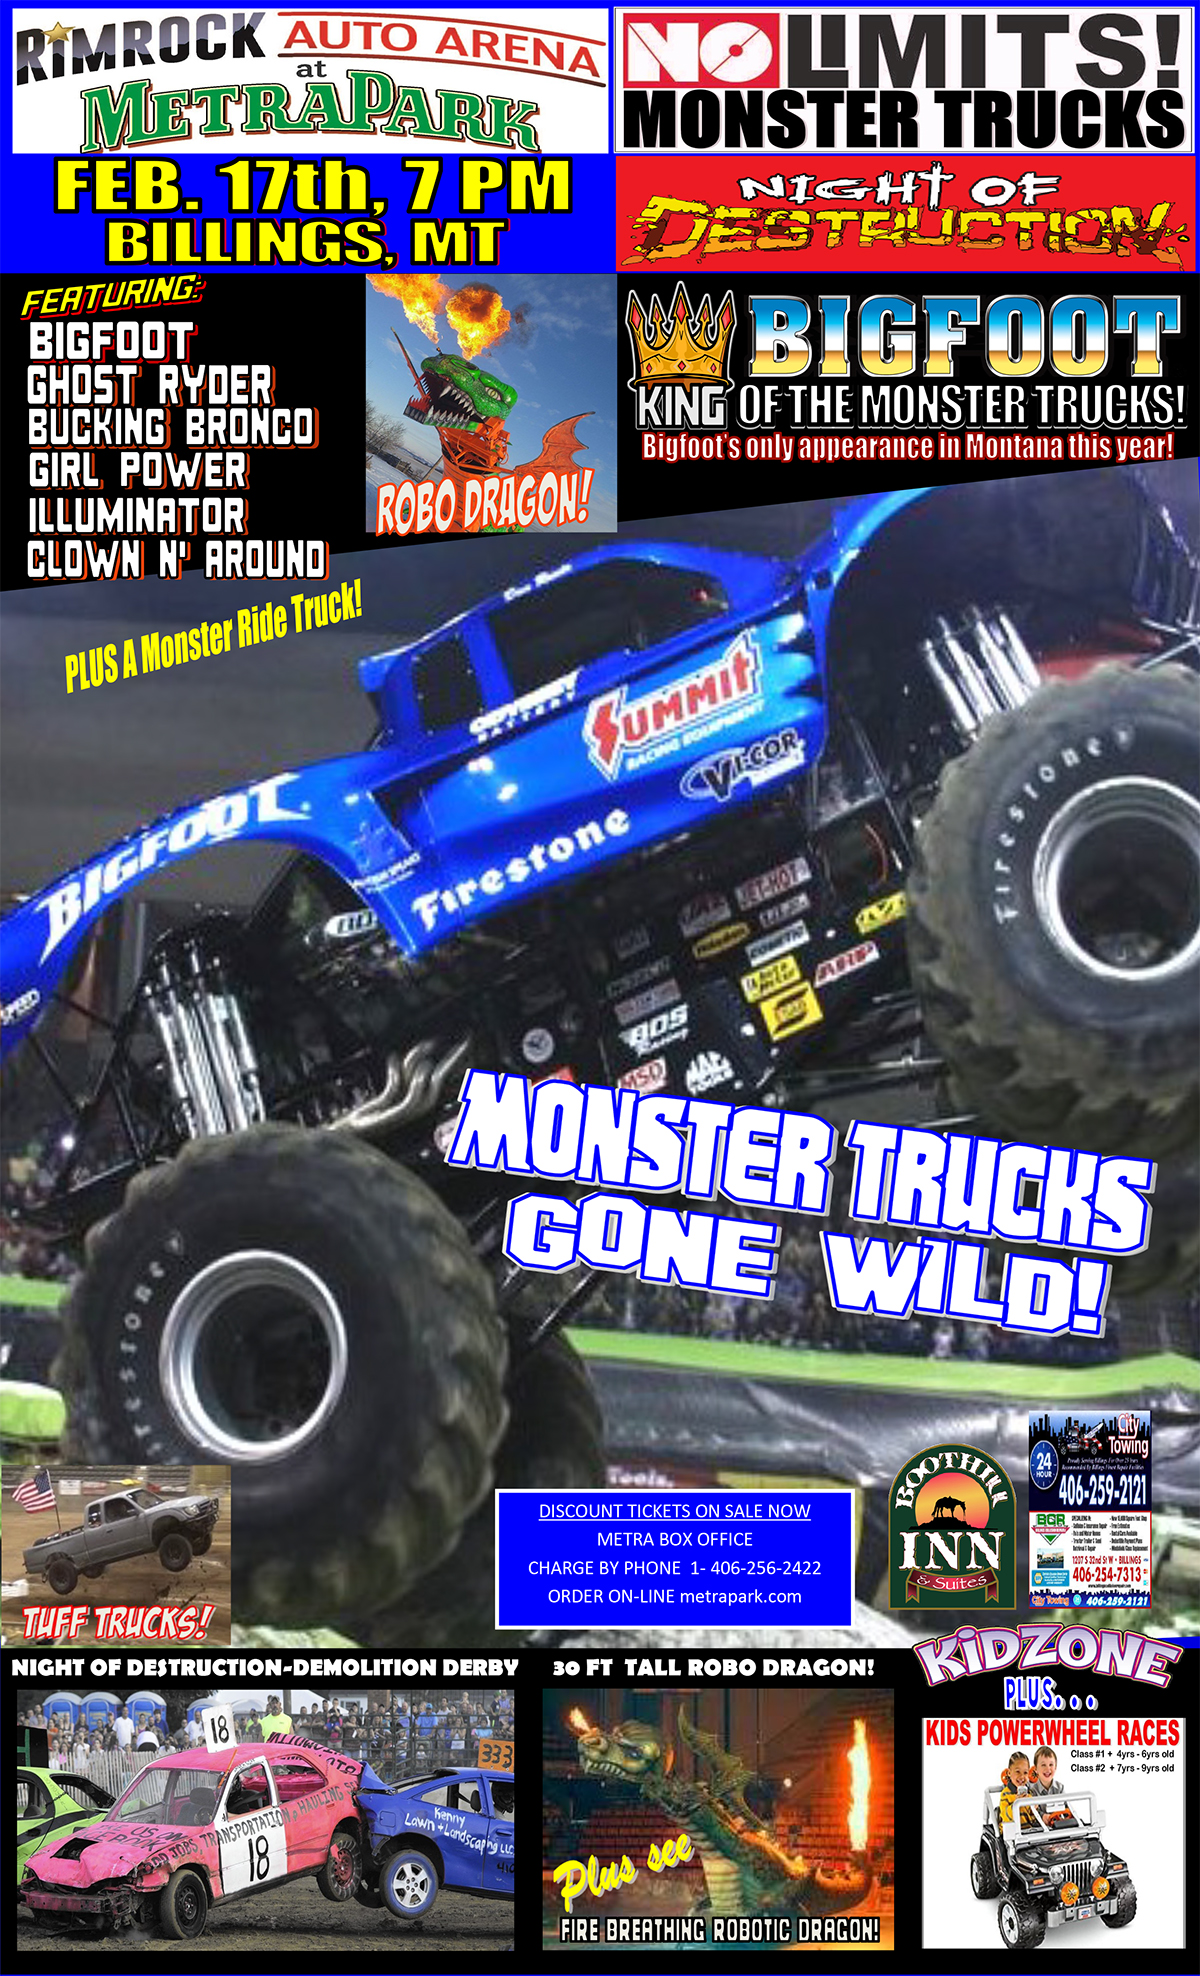 no-limits-monster-truck-tour-billings-montana-2018-monsters-monthly.jpg